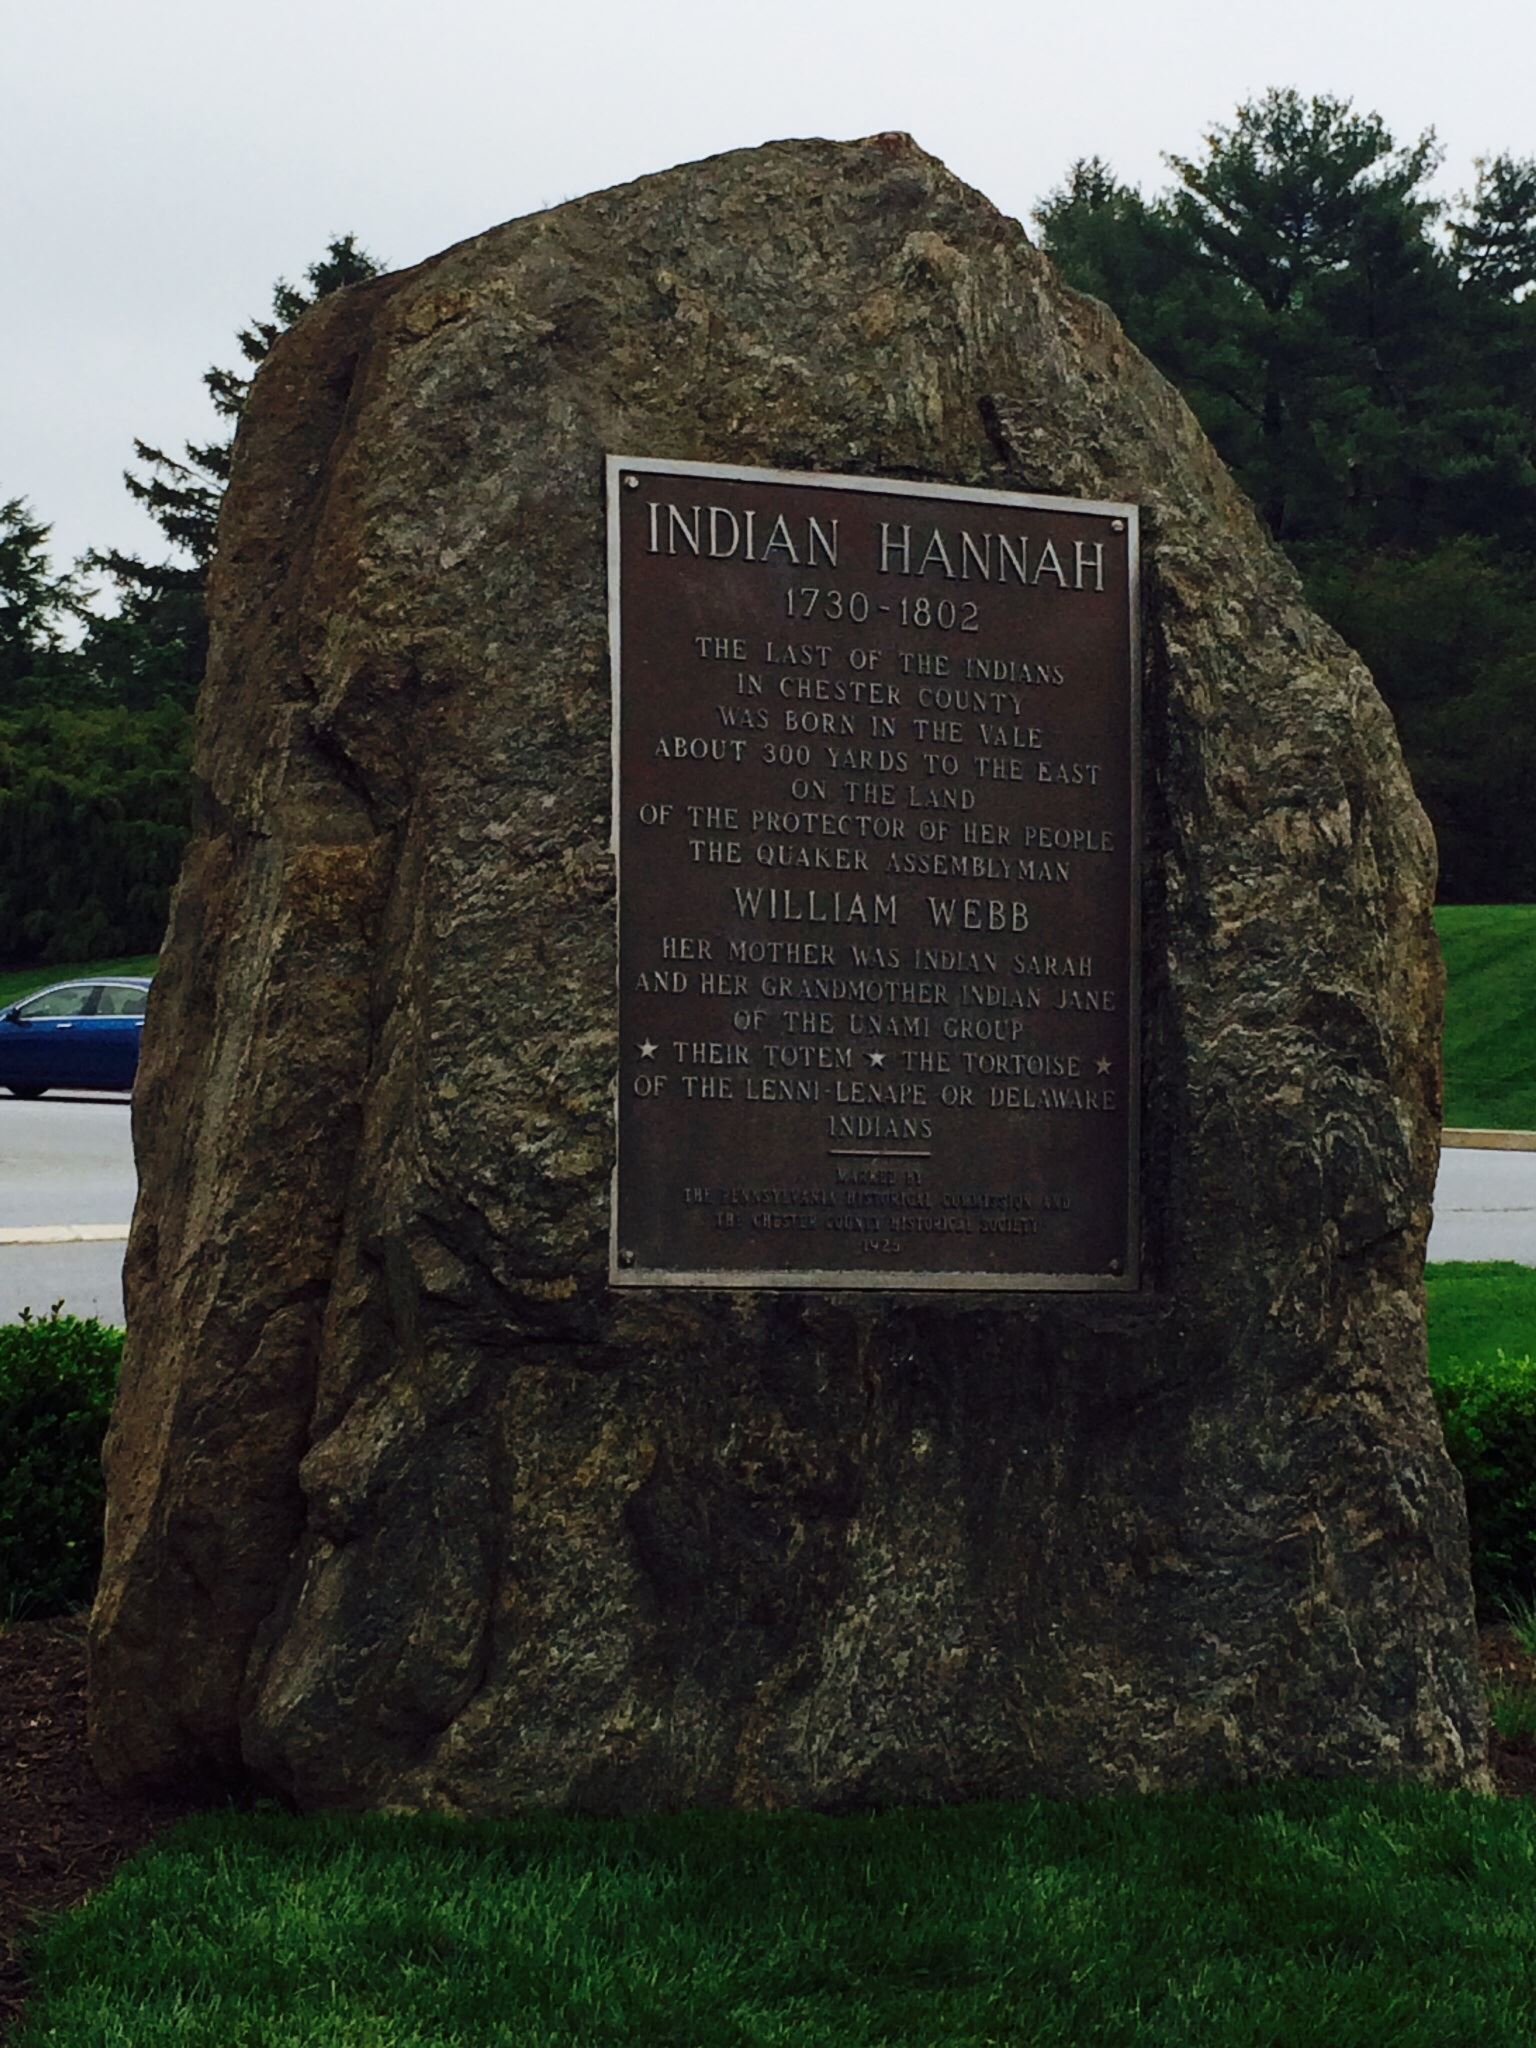 Indian Hannah Rock Plaque